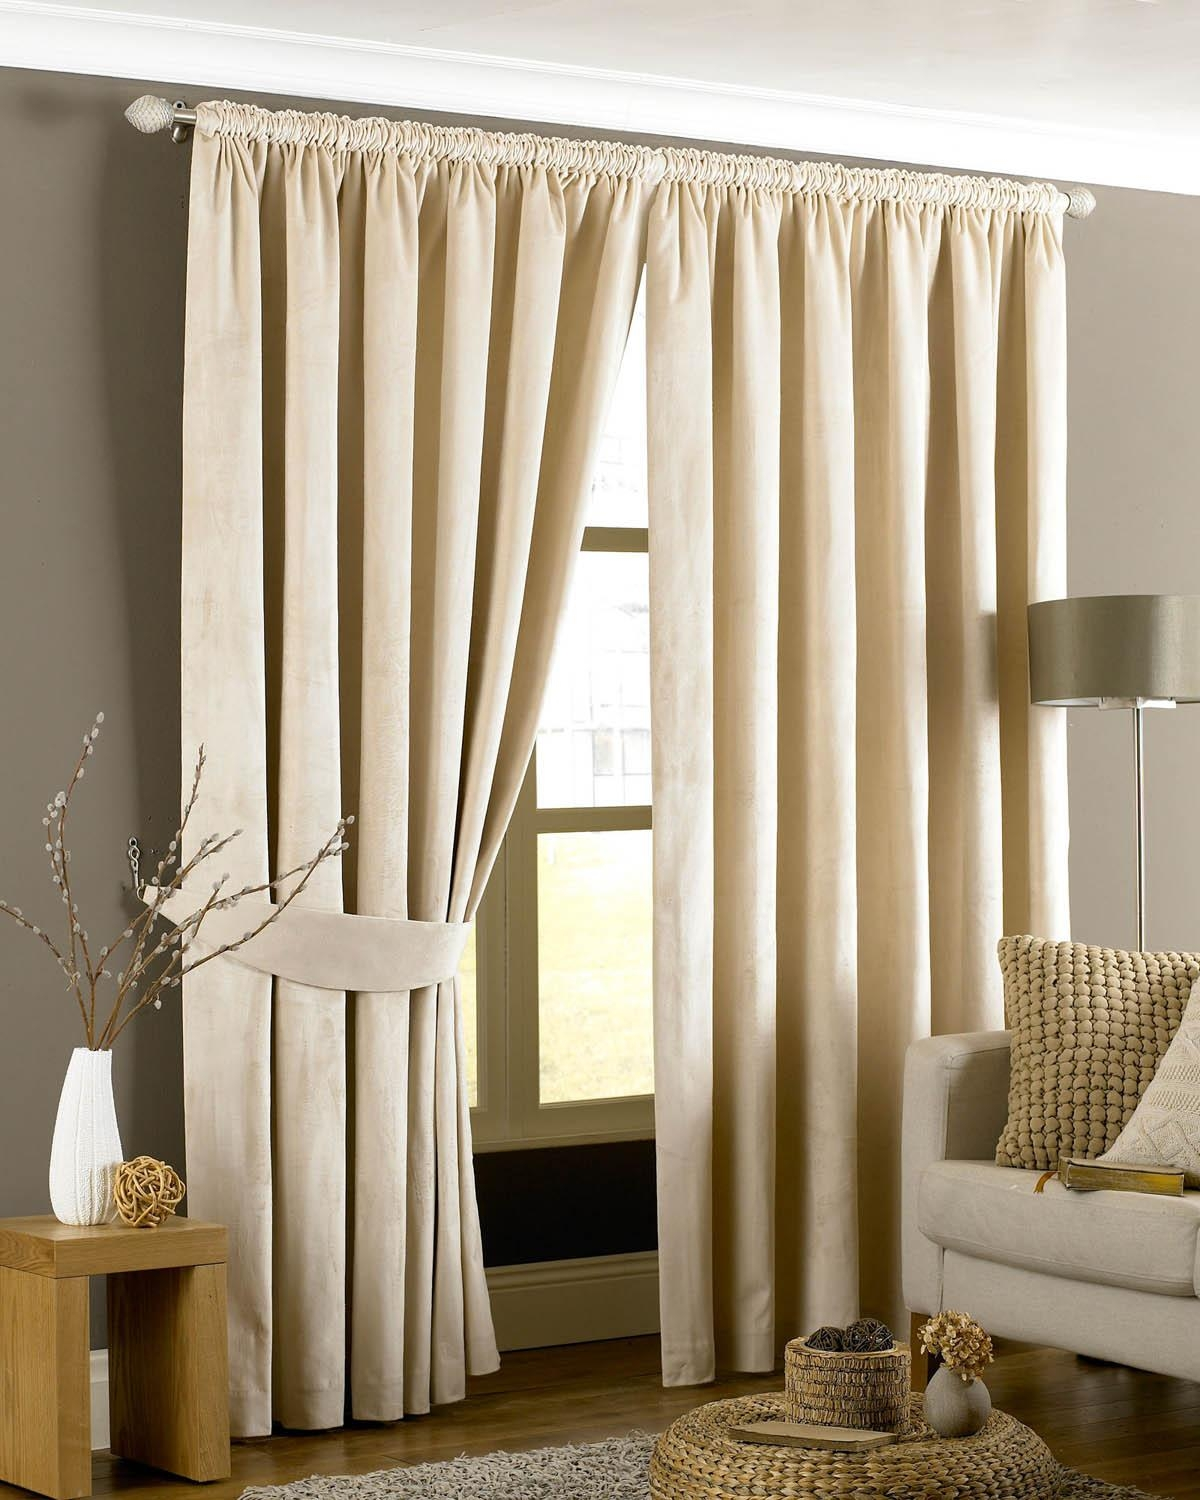 Emperor Eyelet Lined Curtains Cream Free Uk Delivery Terrys With Cream Lined Curtains (Image 5 of 15)